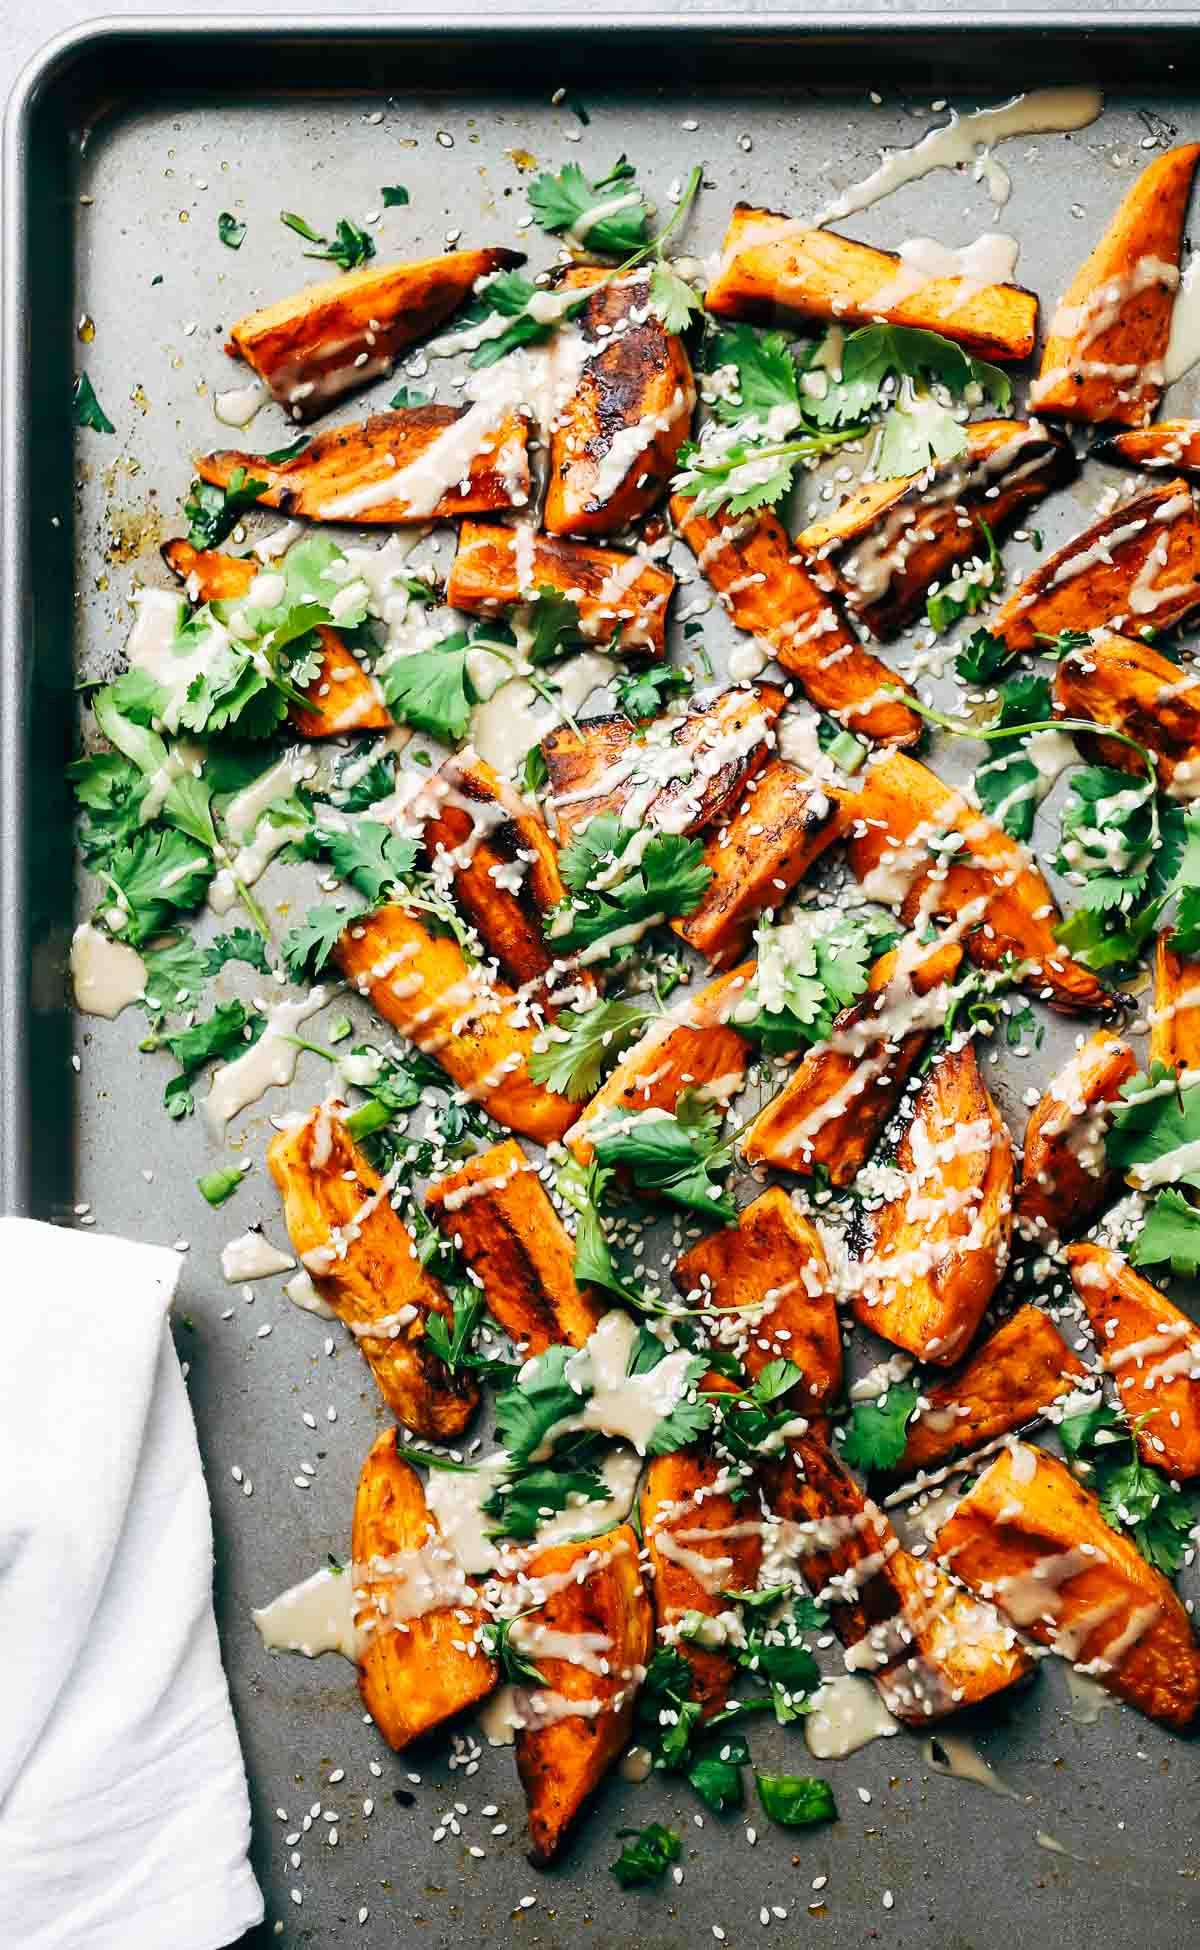 30-Minute Sesame Roasted Sweet Potatoes by pinchofyum: A quick and easy vegetarian side that is beautiful and full of yummy sesame flavor. #Sweet_Potatoes #Sesame #Cilantro #Easy